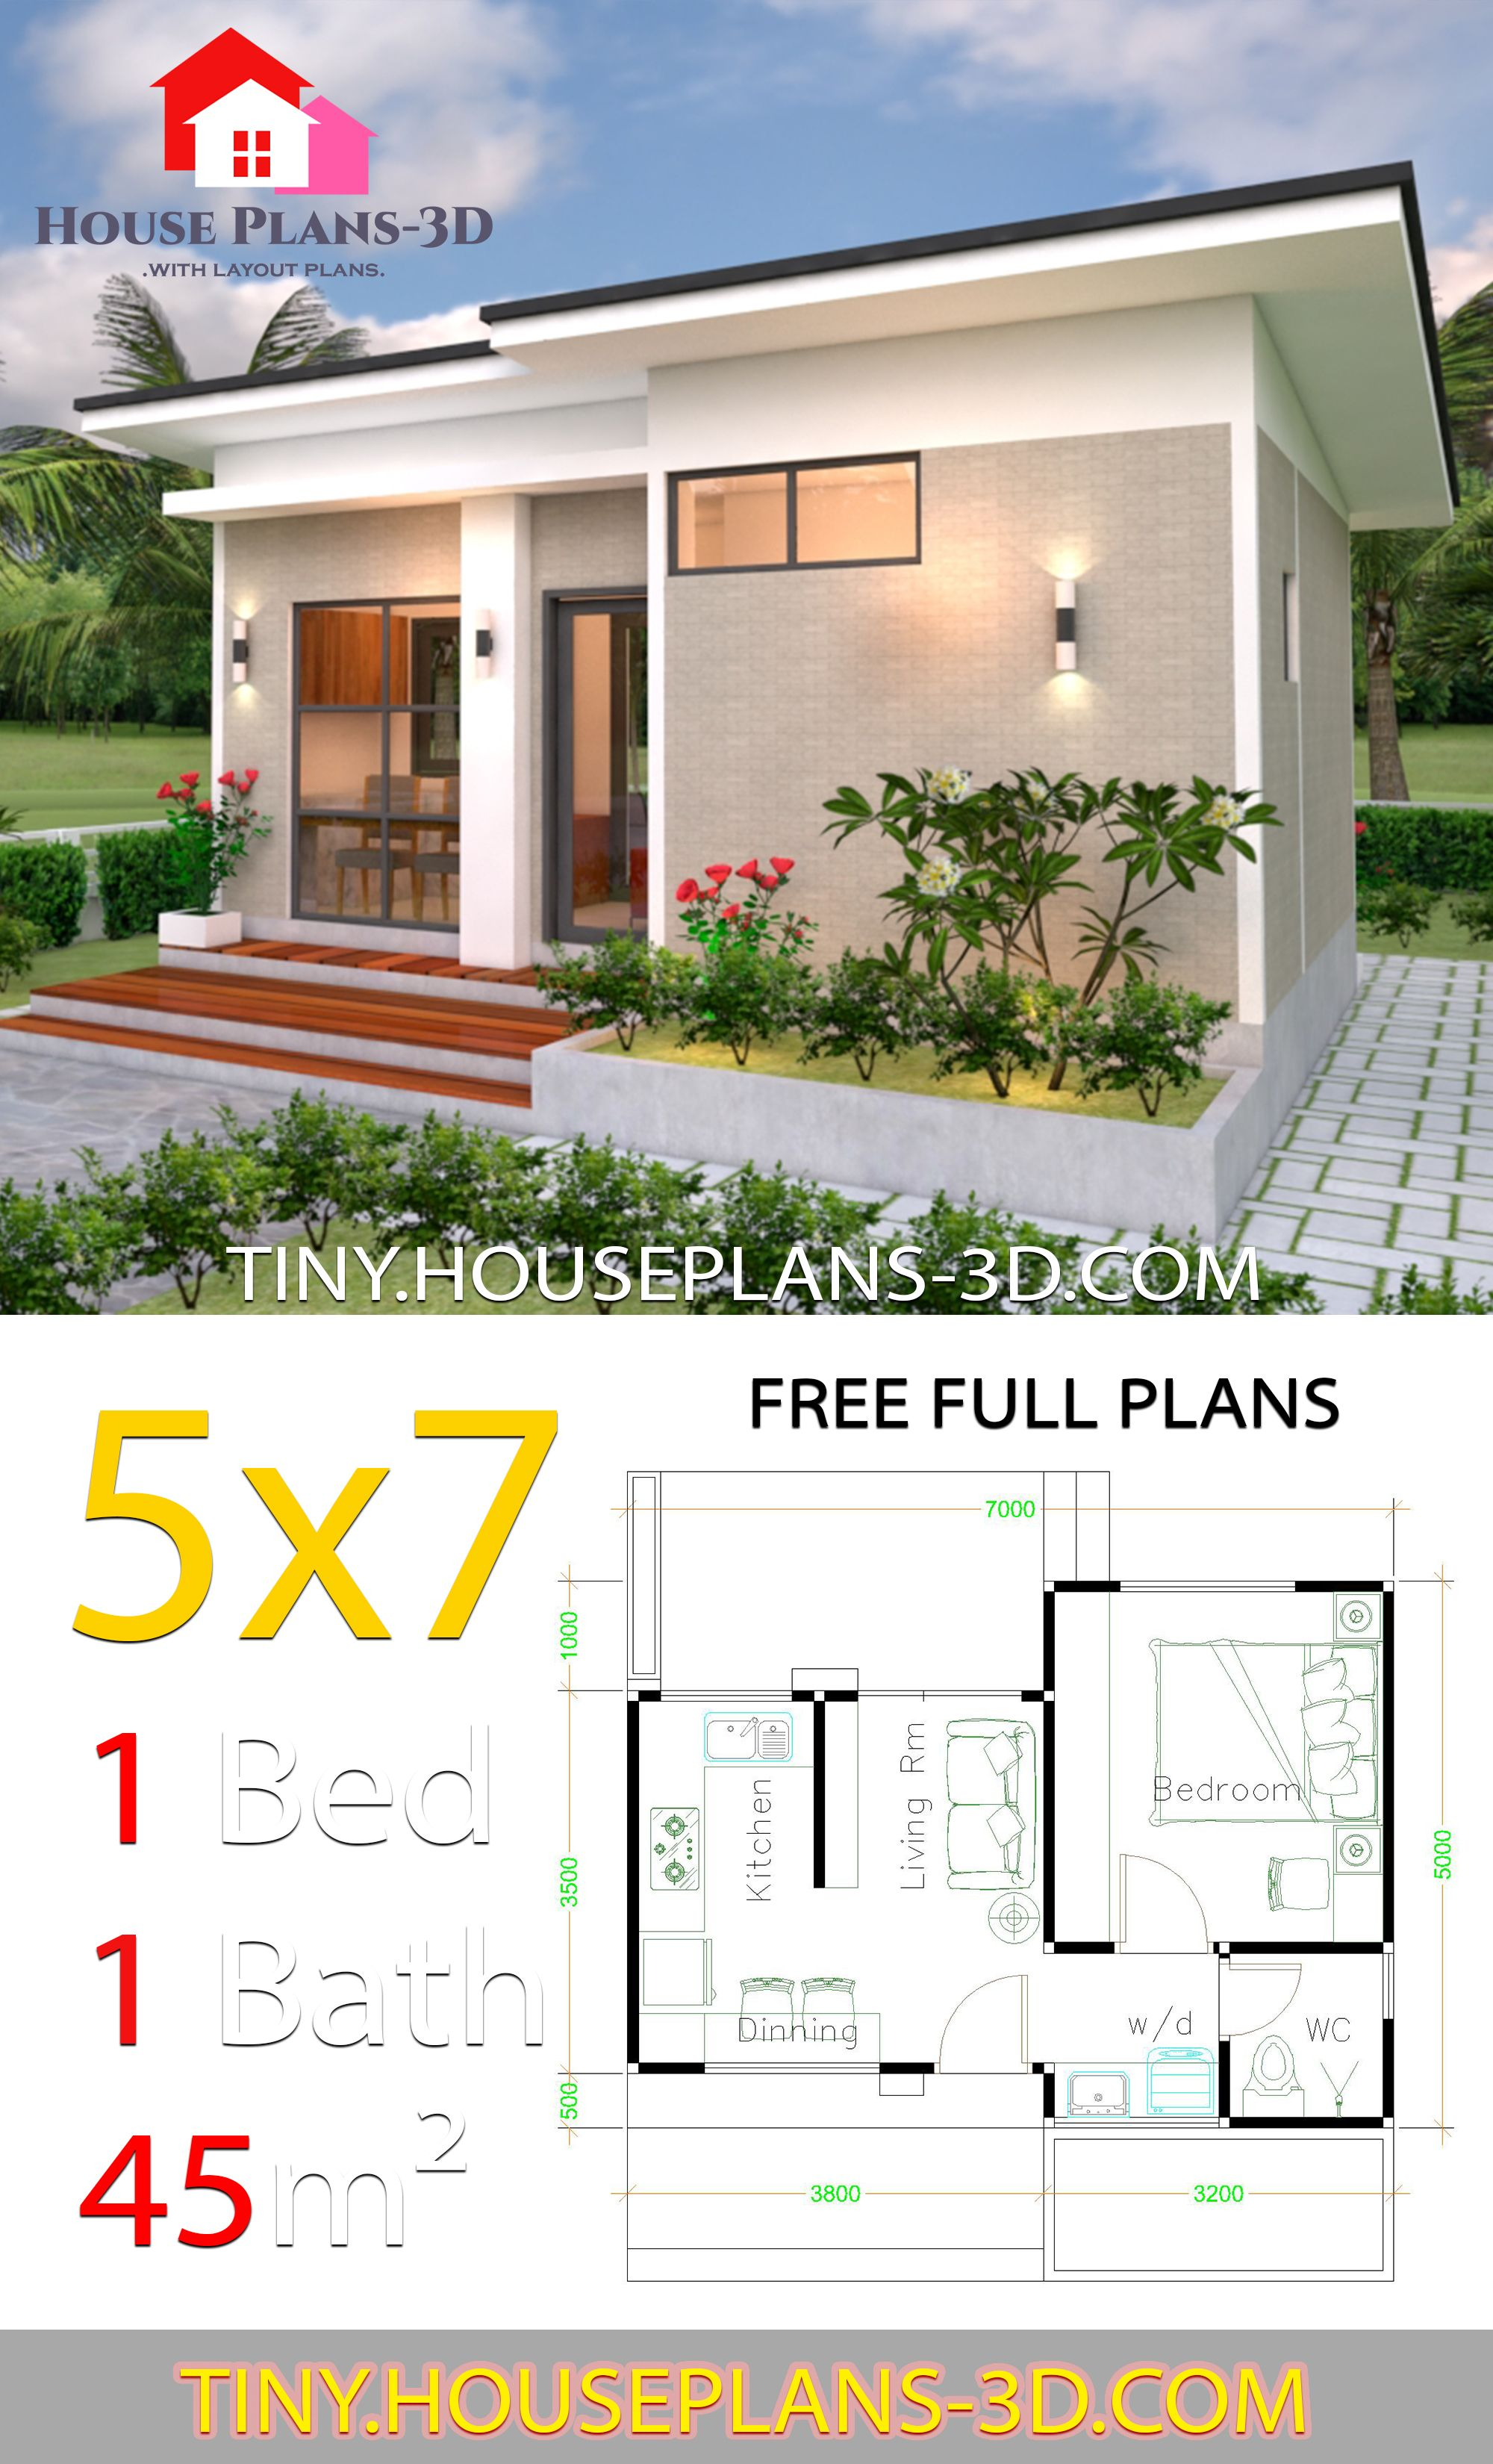 Find Your House Plans Below House Plans 3d Small House Design Plans Small House Design House Plans